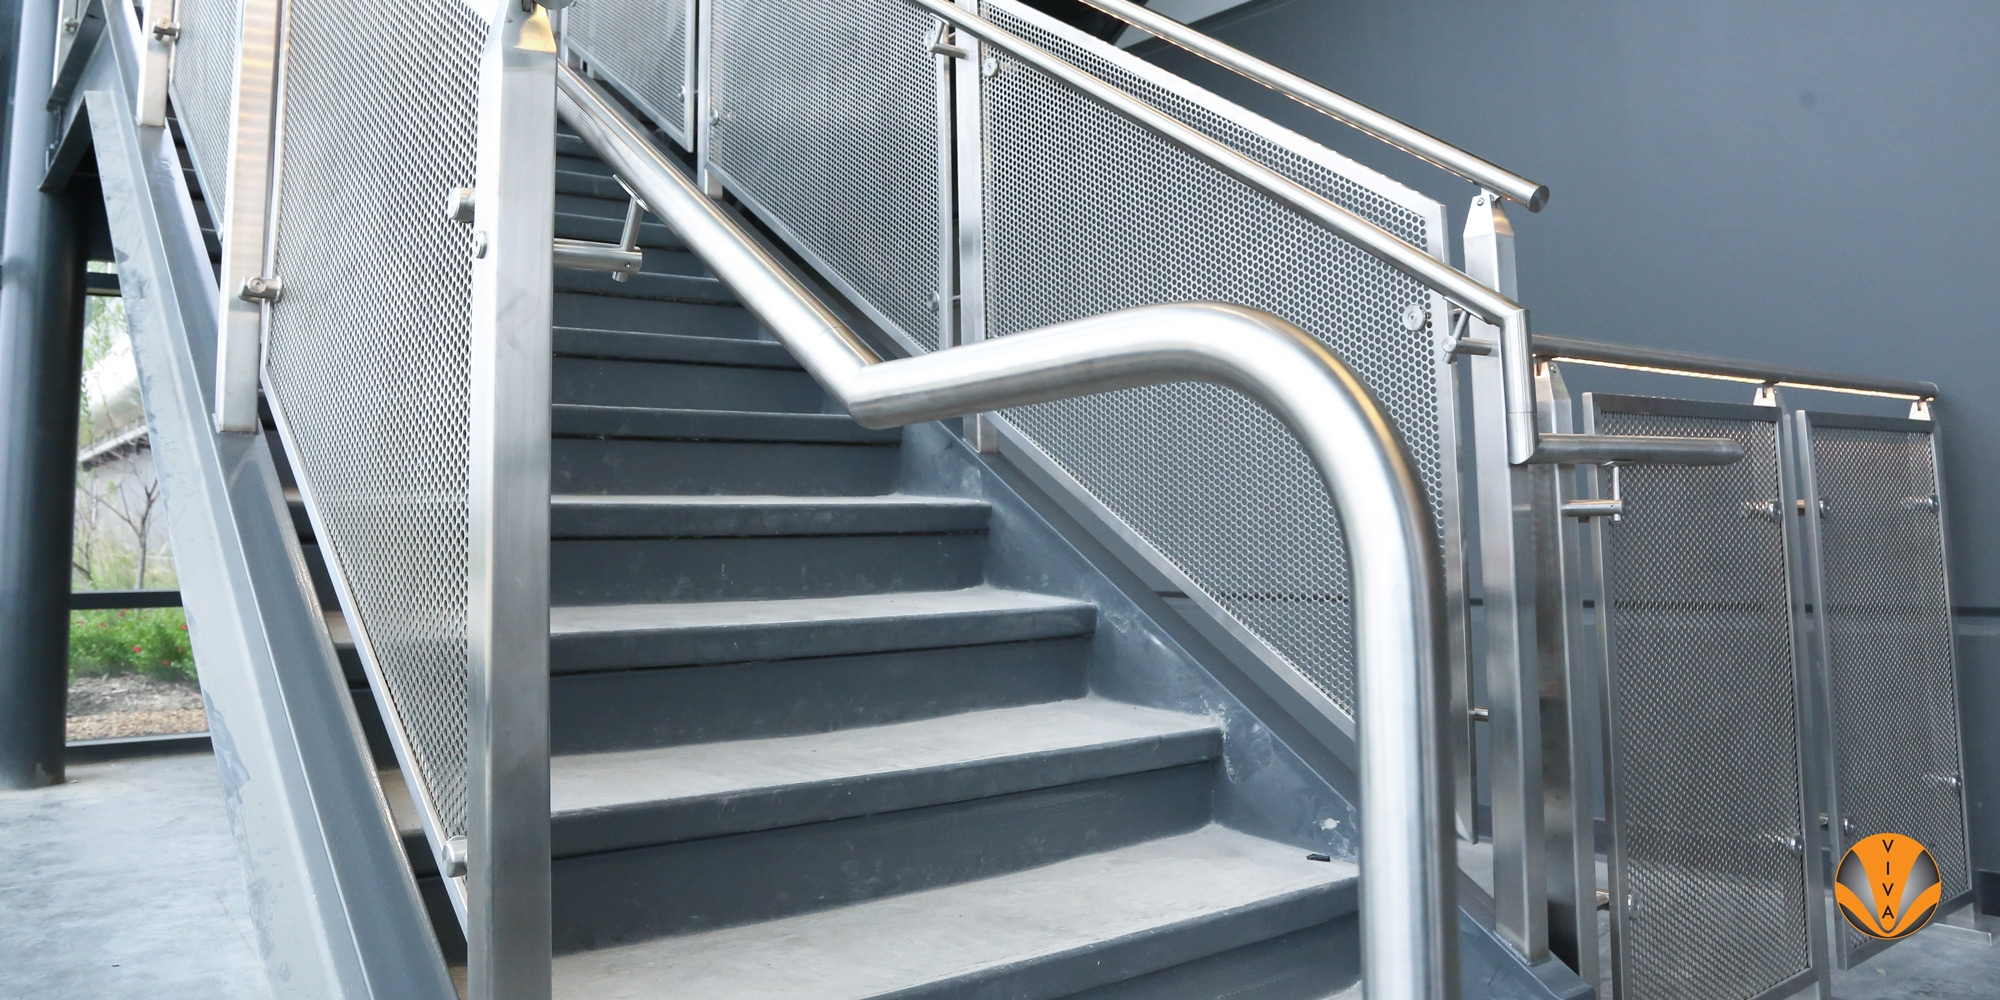 Lighted Stair Railing Cube™ With Irail™ Traxxas Headquarters   Lighted Handrails For Stairs   Wood Hand Rail Design   Antique   Brushed Nickel   Modern   Acrylic